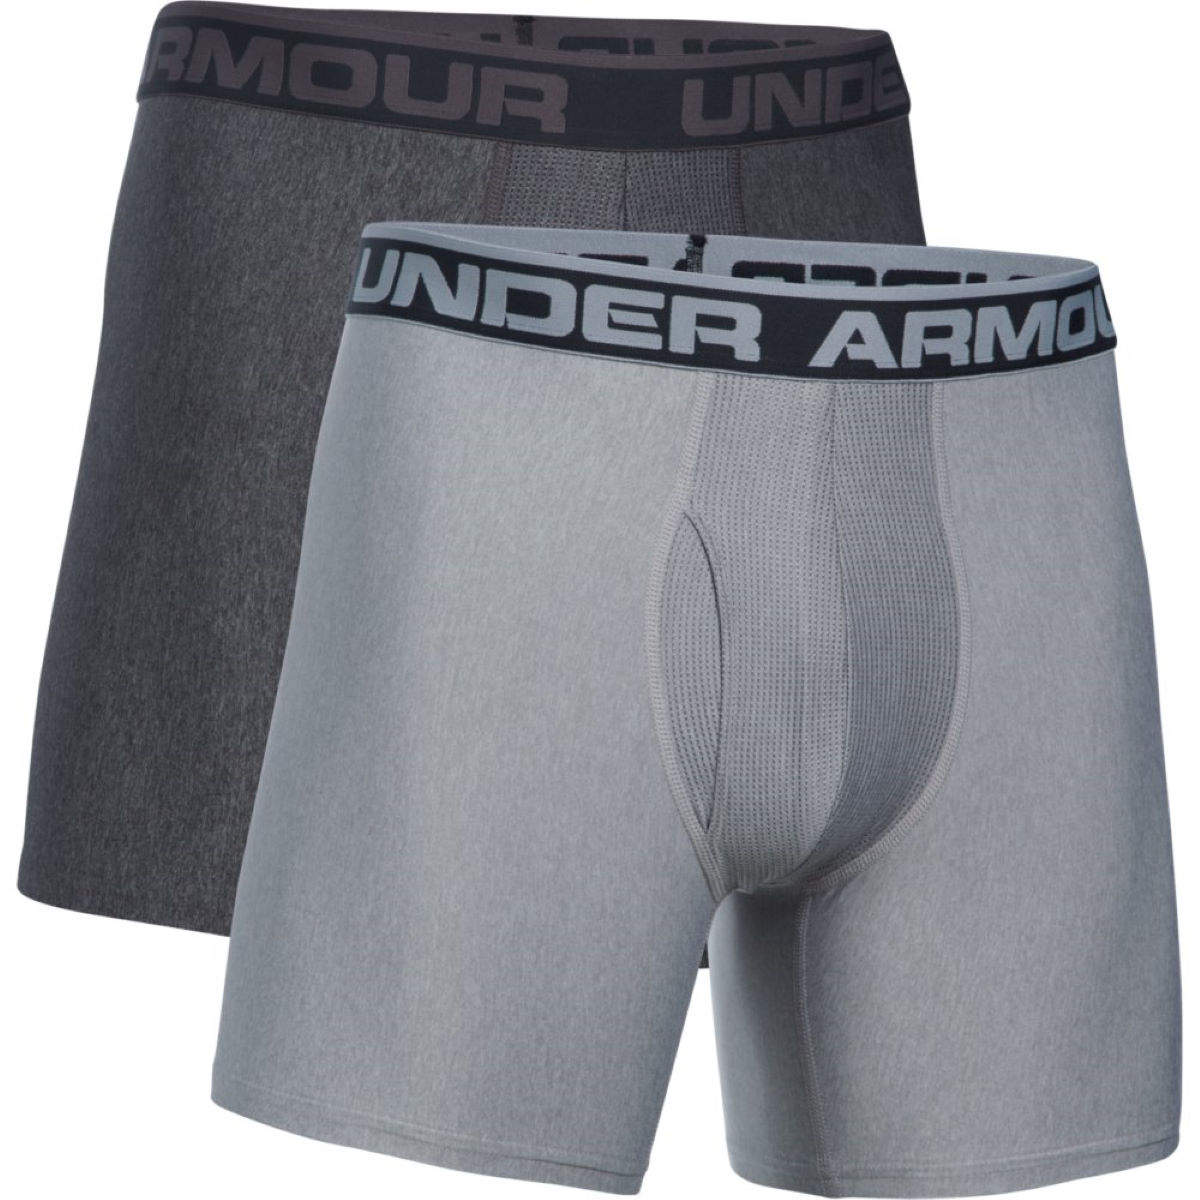 Boxer Under Armour O Series (15 cm environ, lot de 2) - S